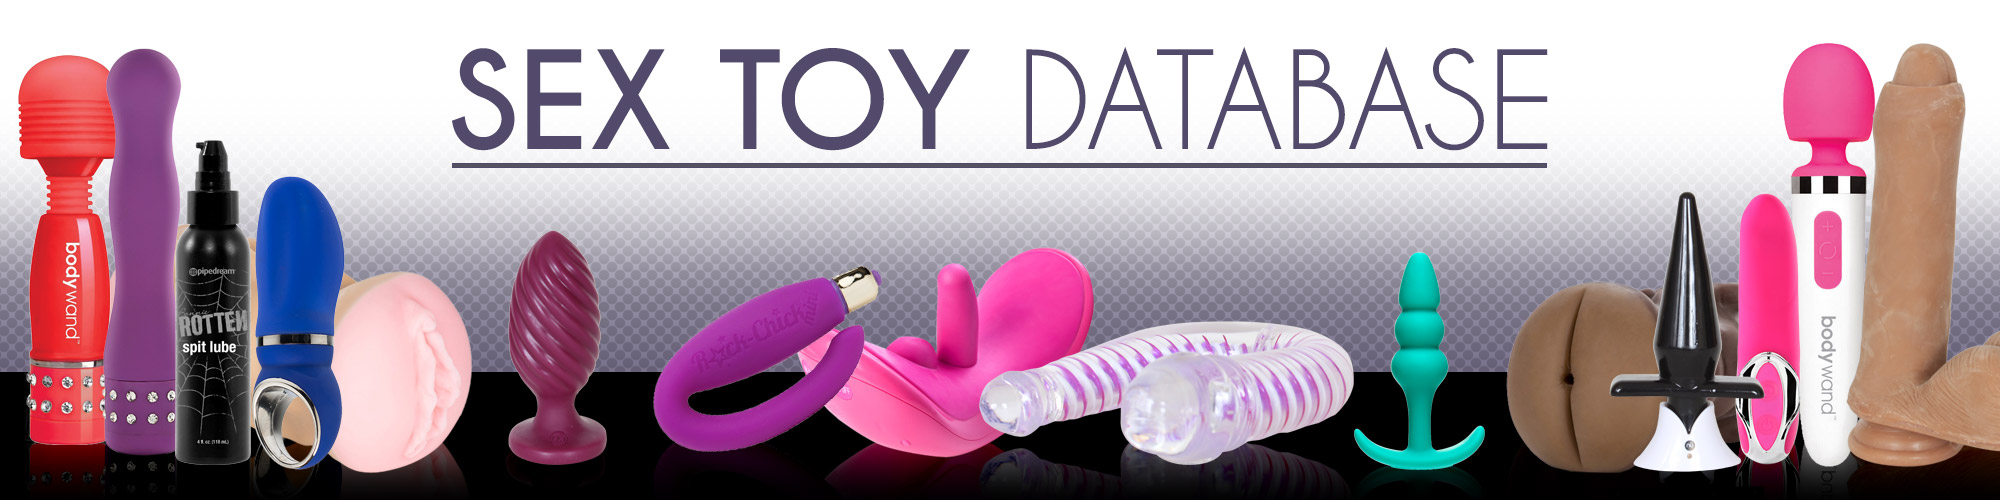 Welcome to the The Sex Toy Database official on Demand theatre and store.